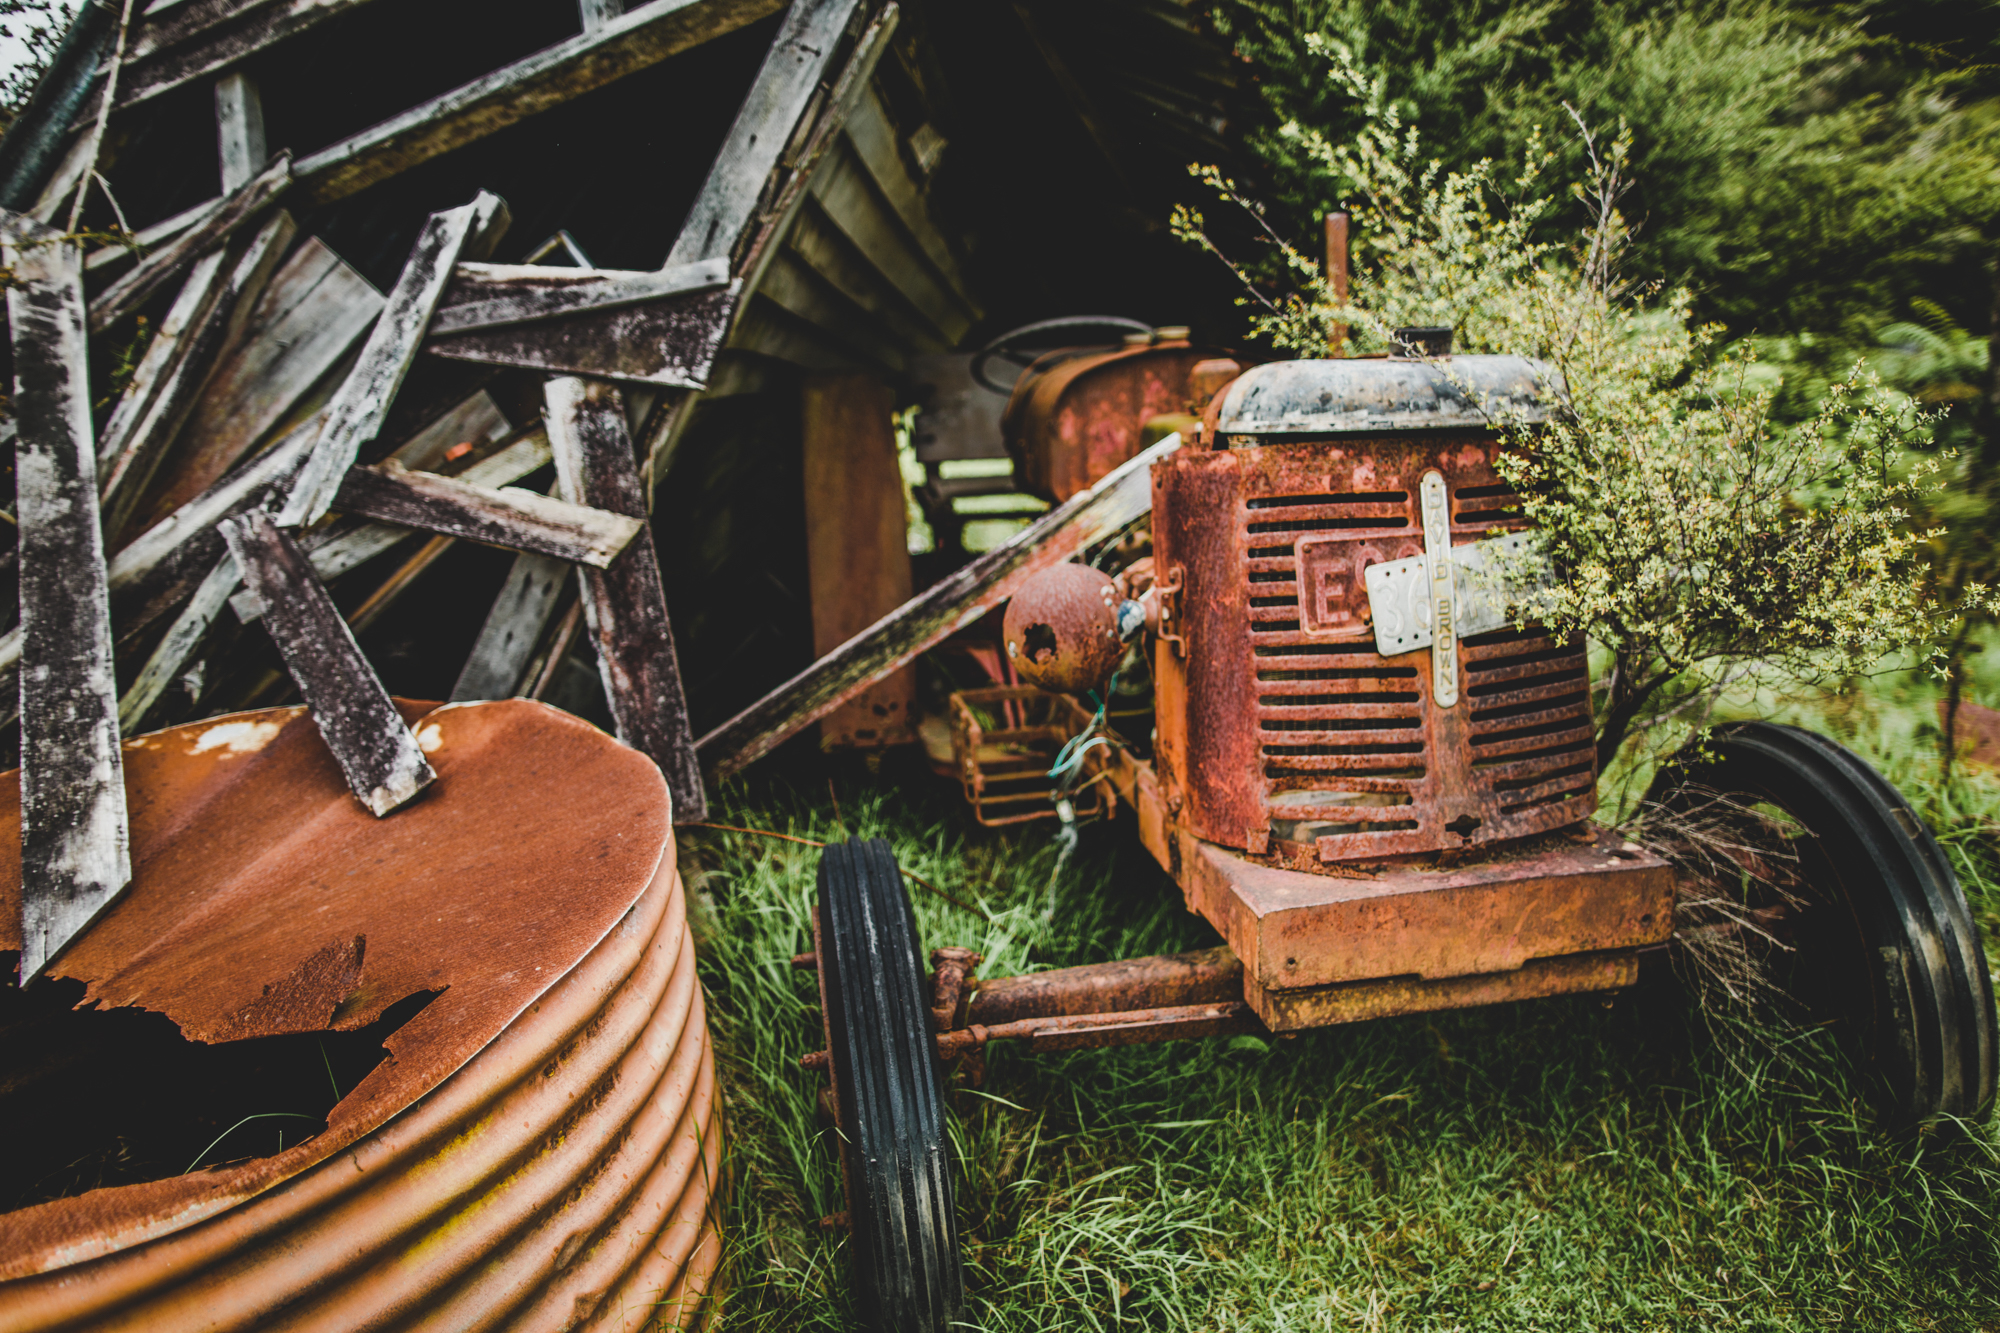 Rusty Tractor standing in the bushes